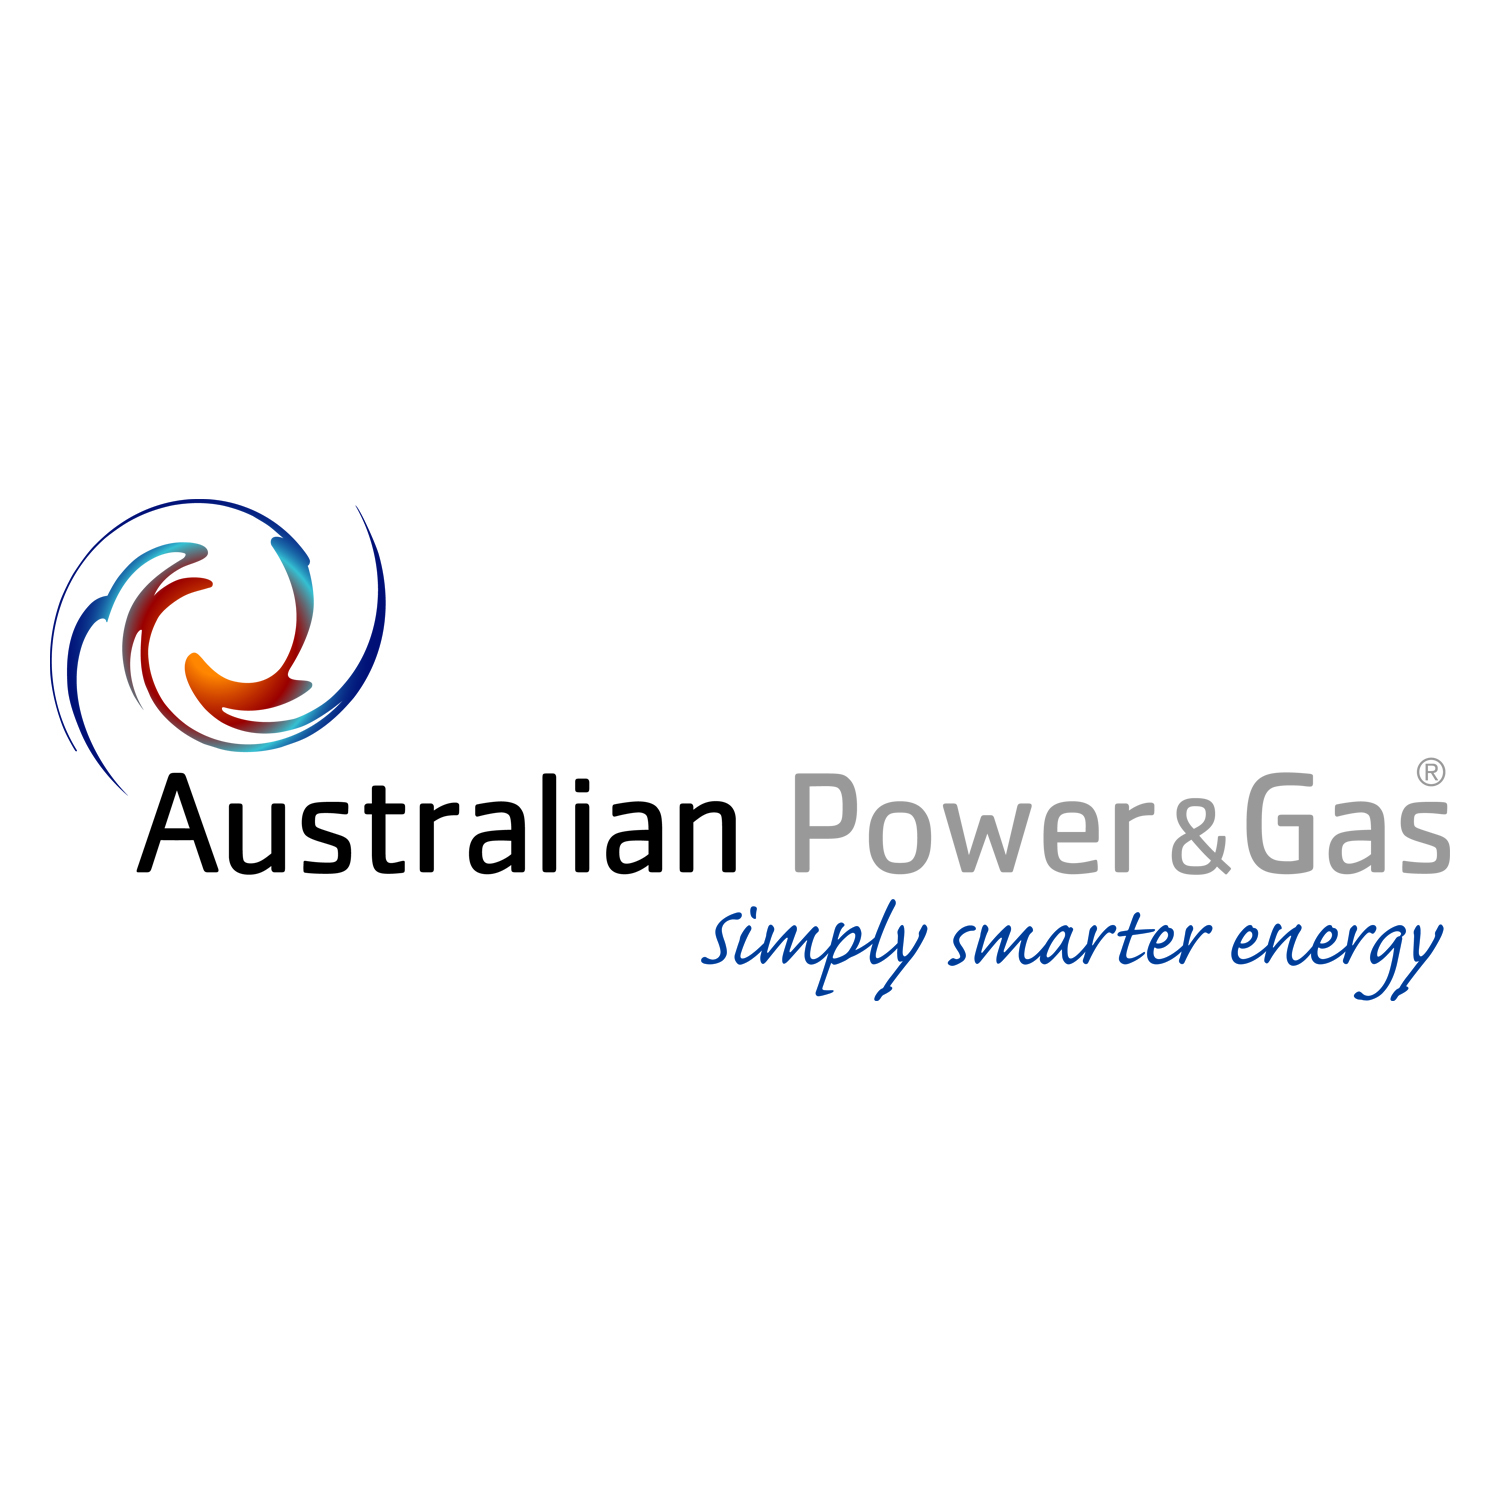 Aust Power & Gas Logo.jpg